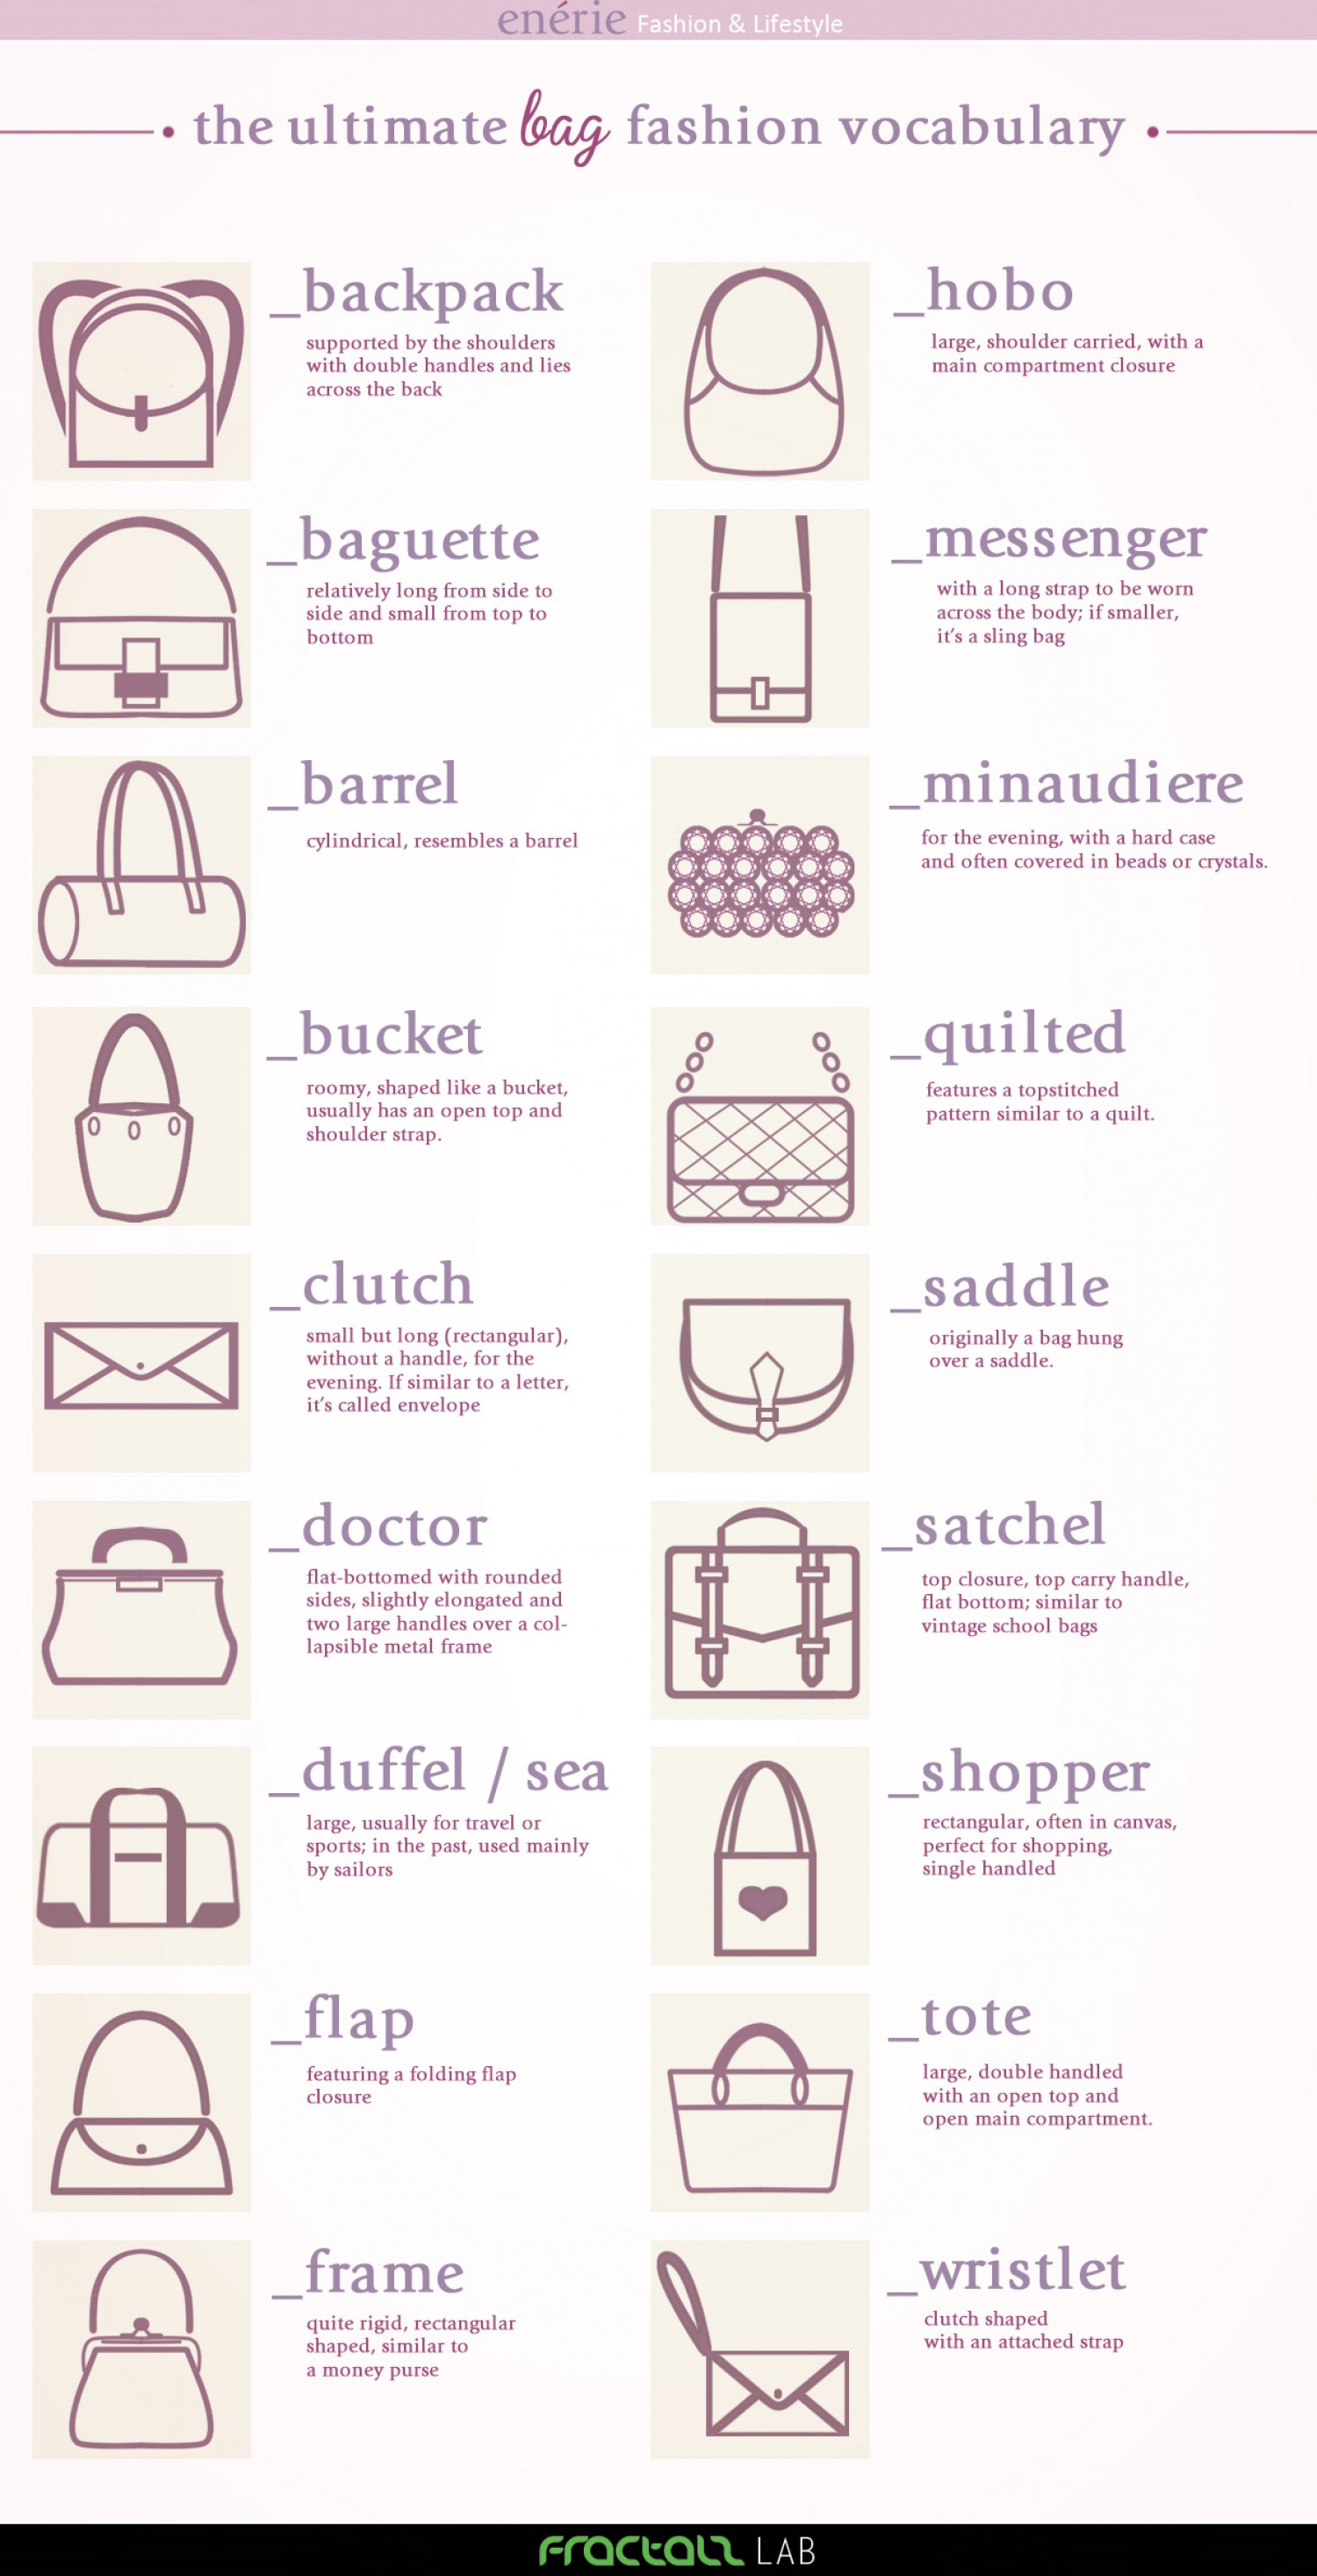 the-ultimate-bag-vocabulary_5164653069136_w1500